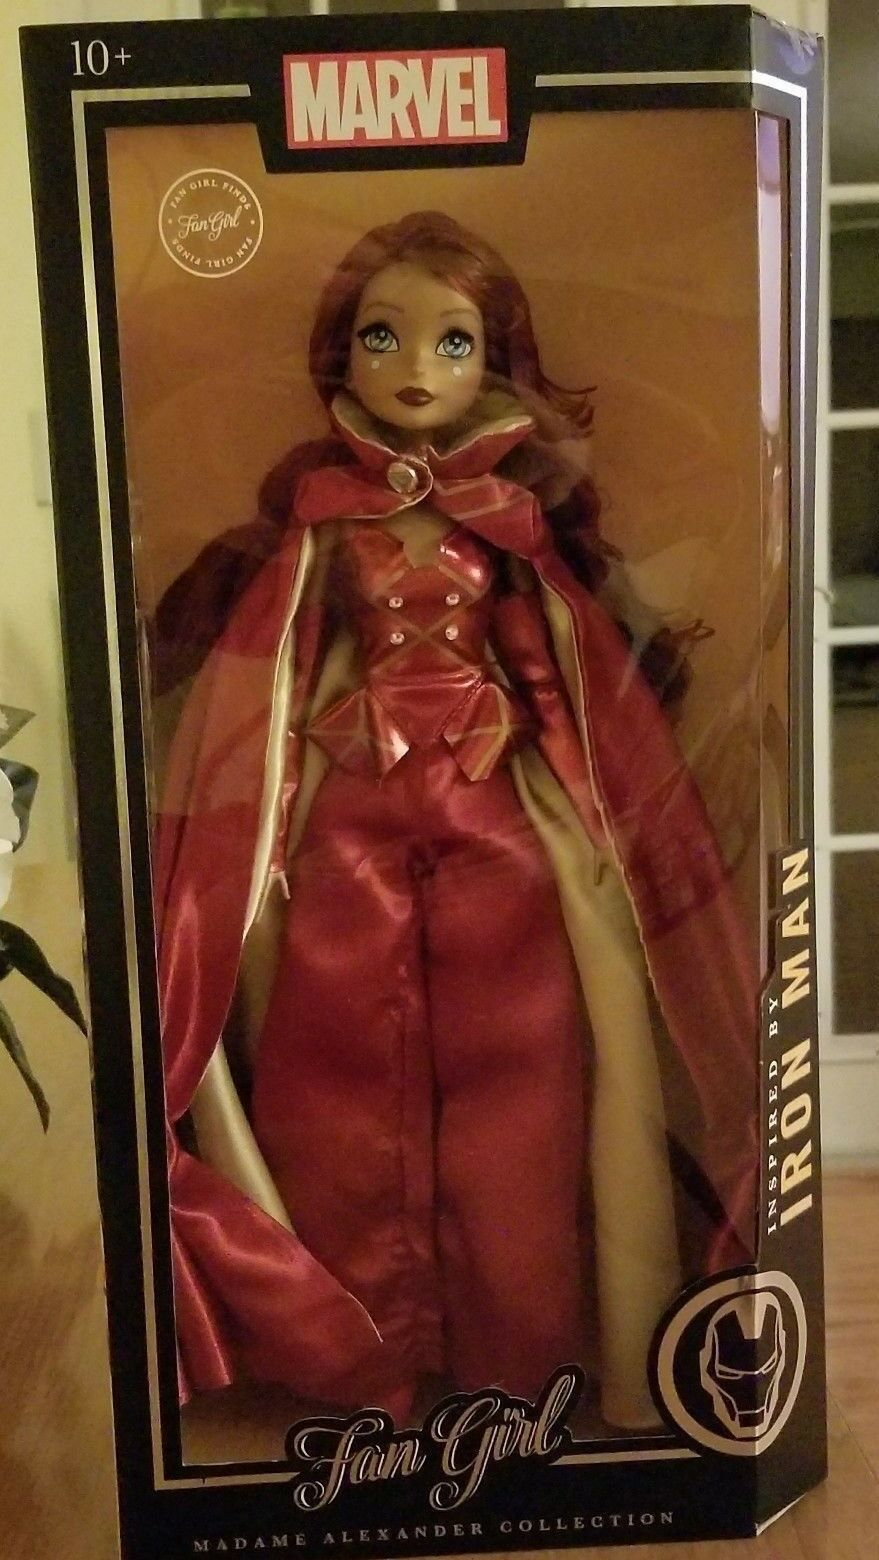 Madame Alexander Marvel Fan Girl  Rare Ironman Variant Doll